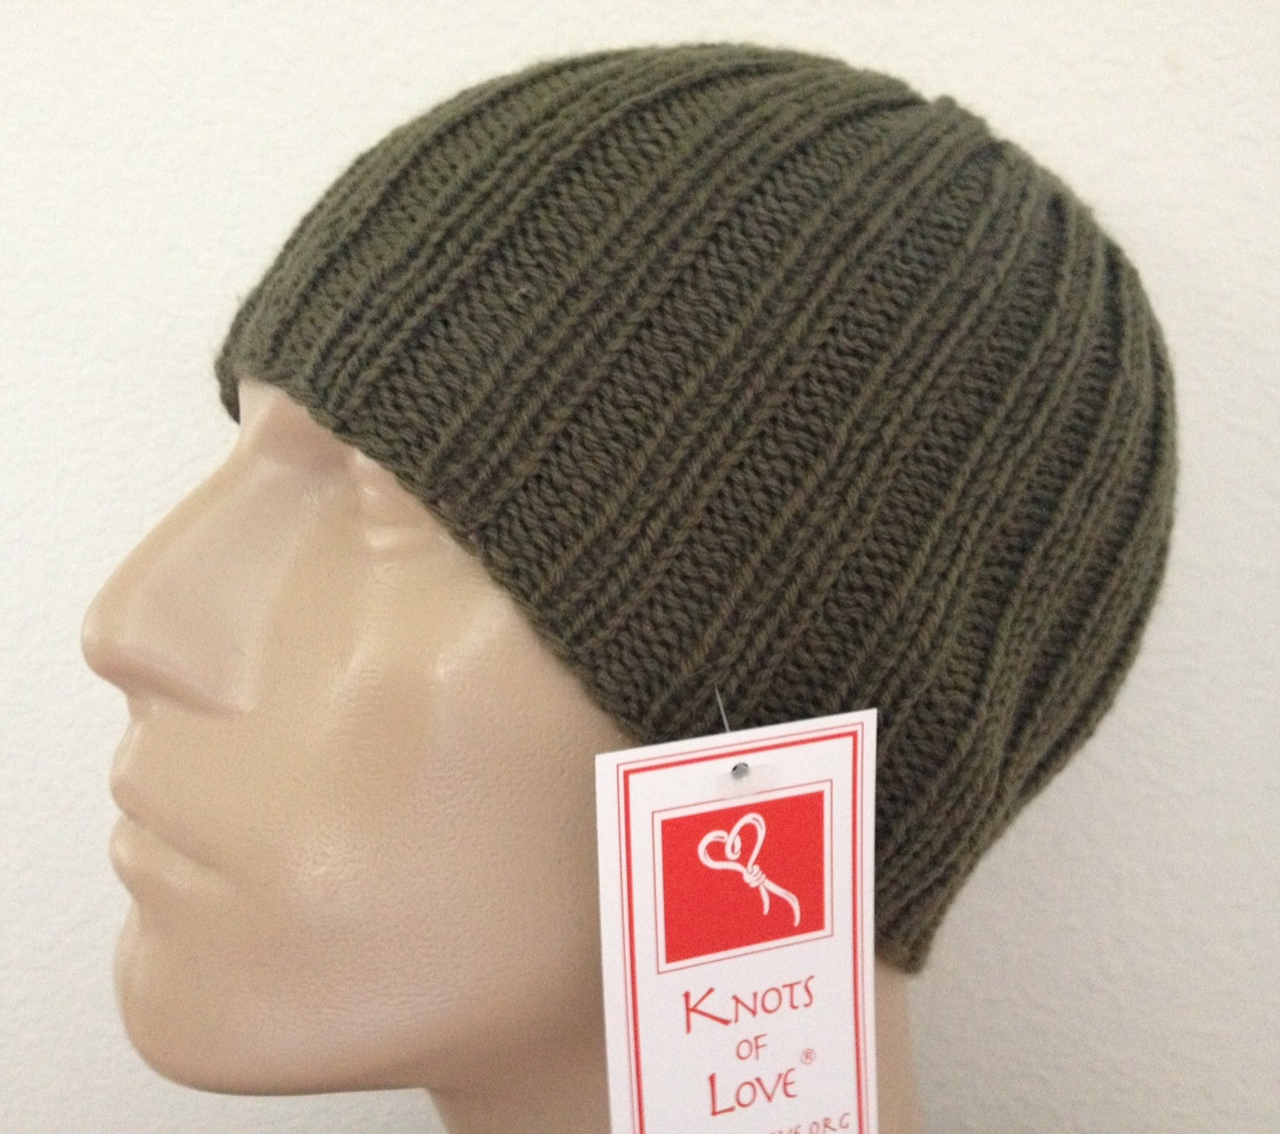 Knitted Mens Hat Patterns Patterns Knots Of Love